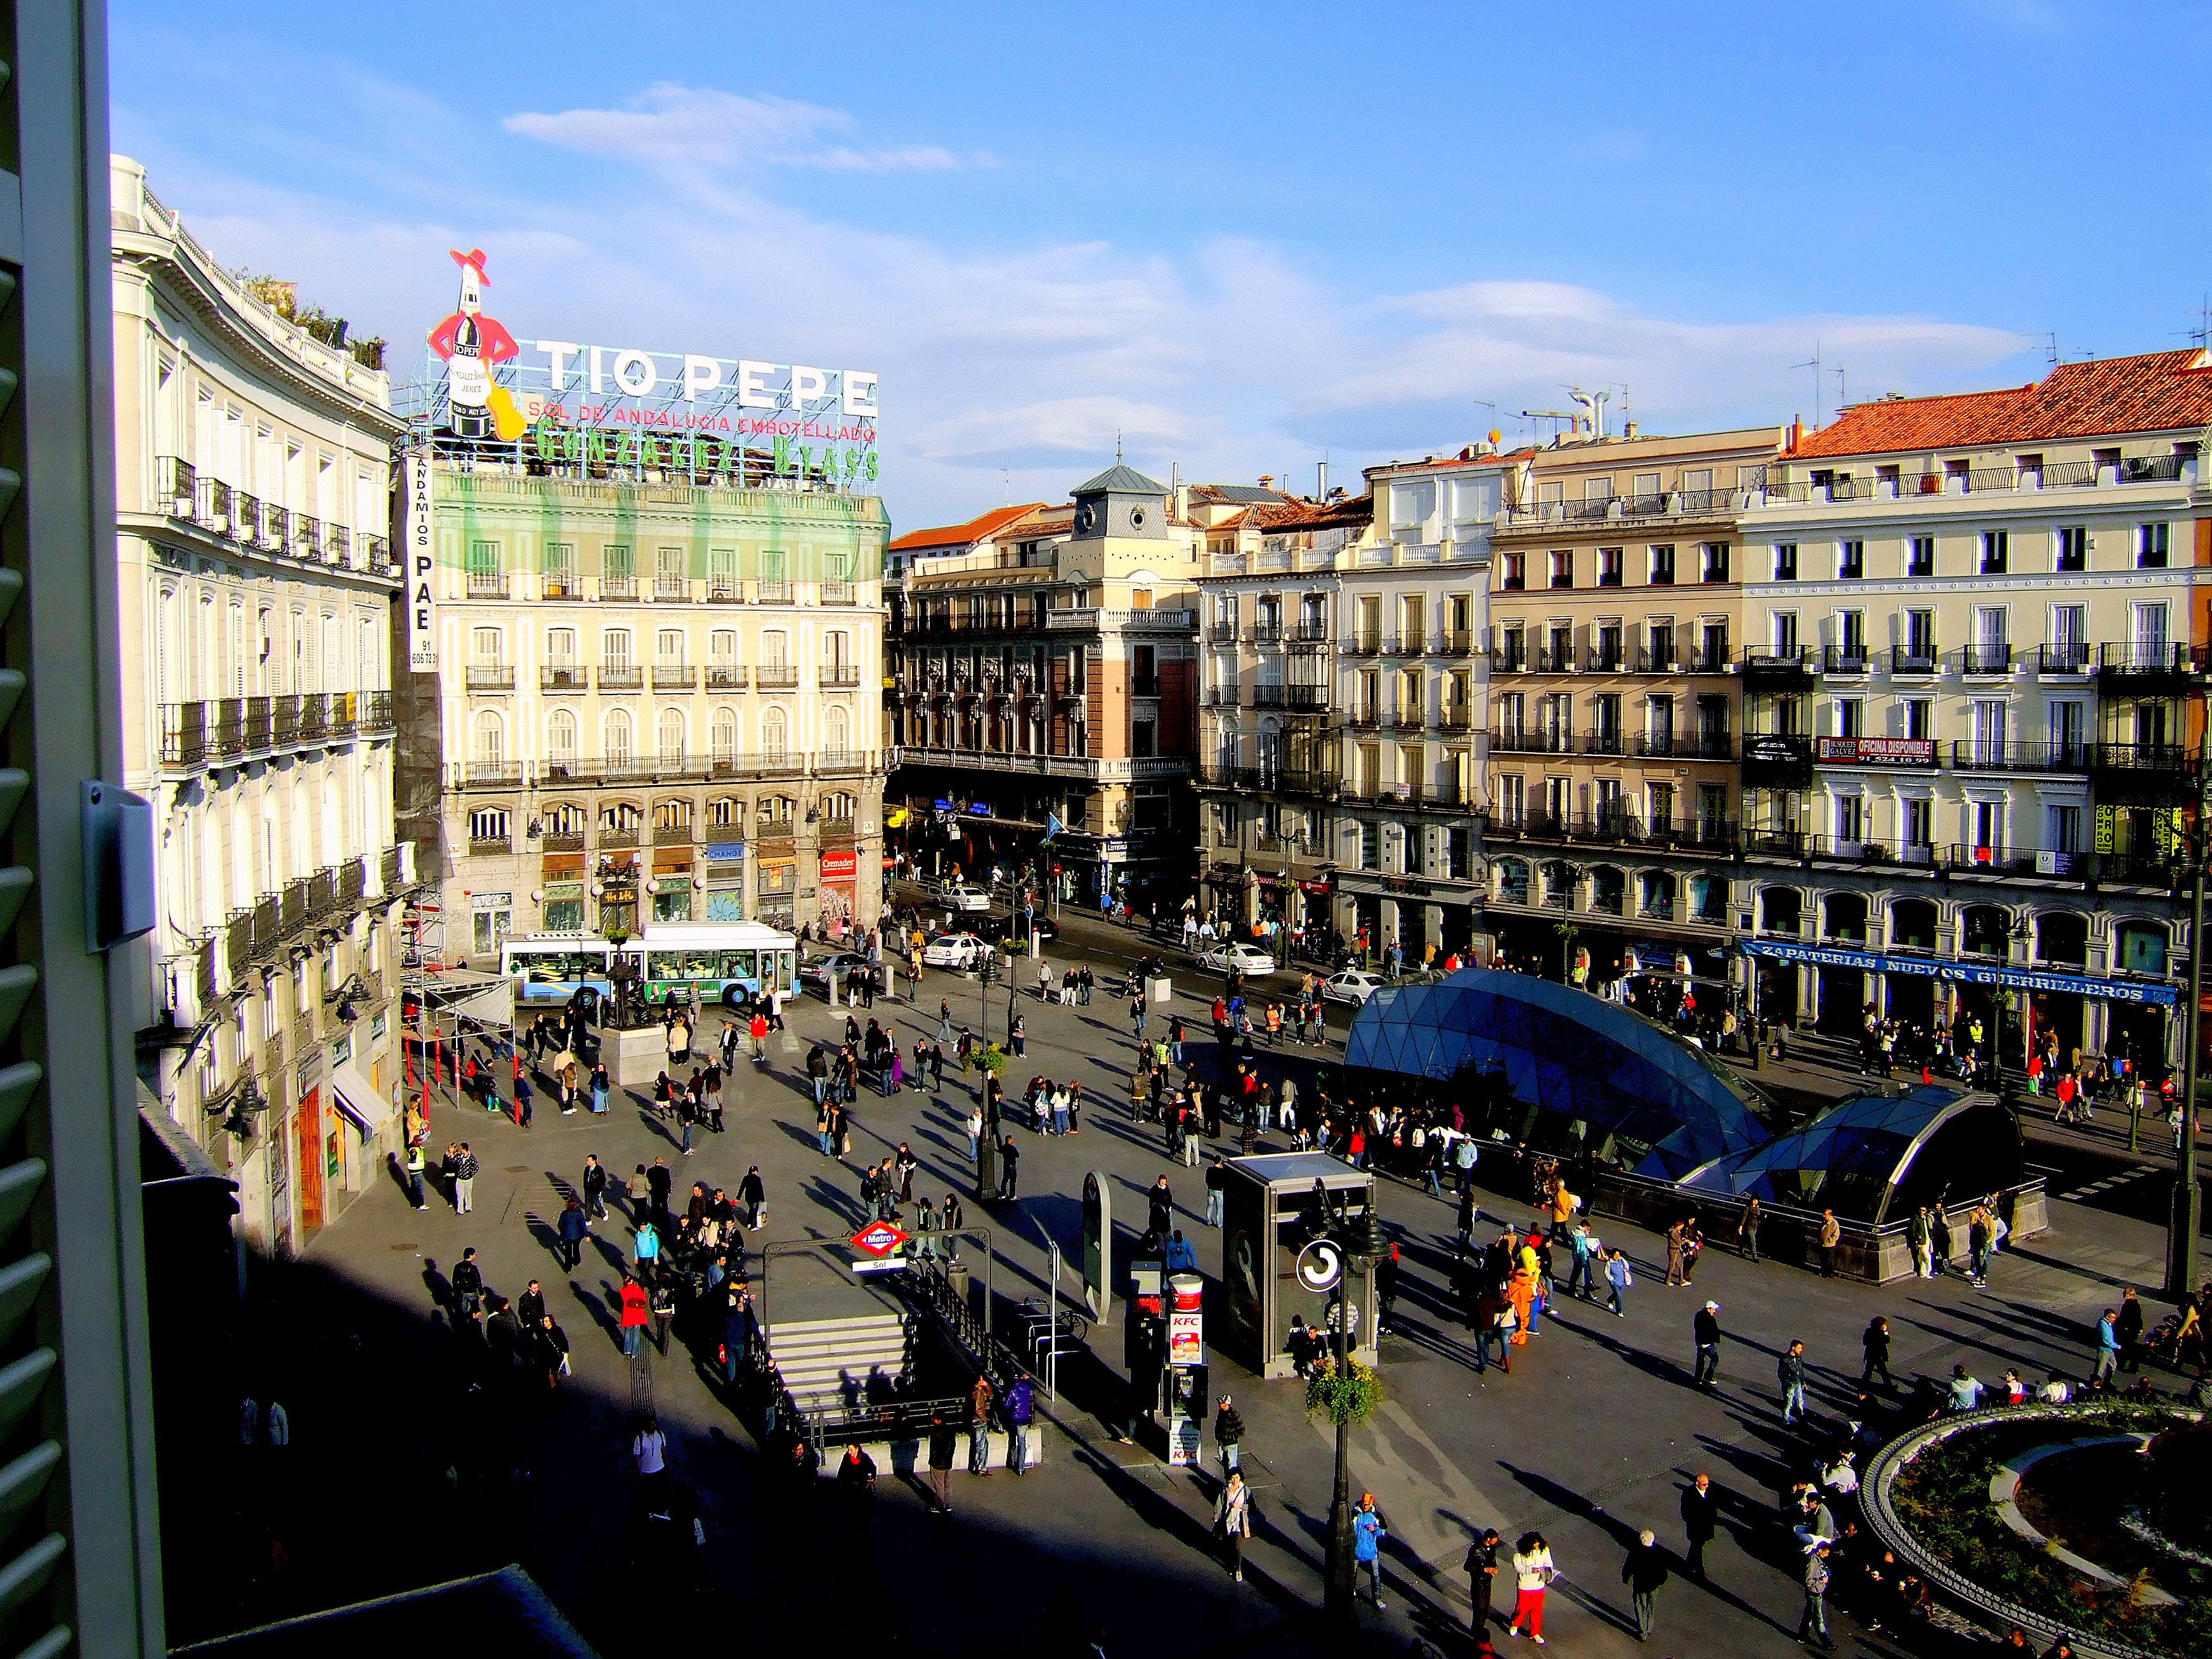 Puerta del sol plaza in madrid thousand wonders for Plaza del sol madrid